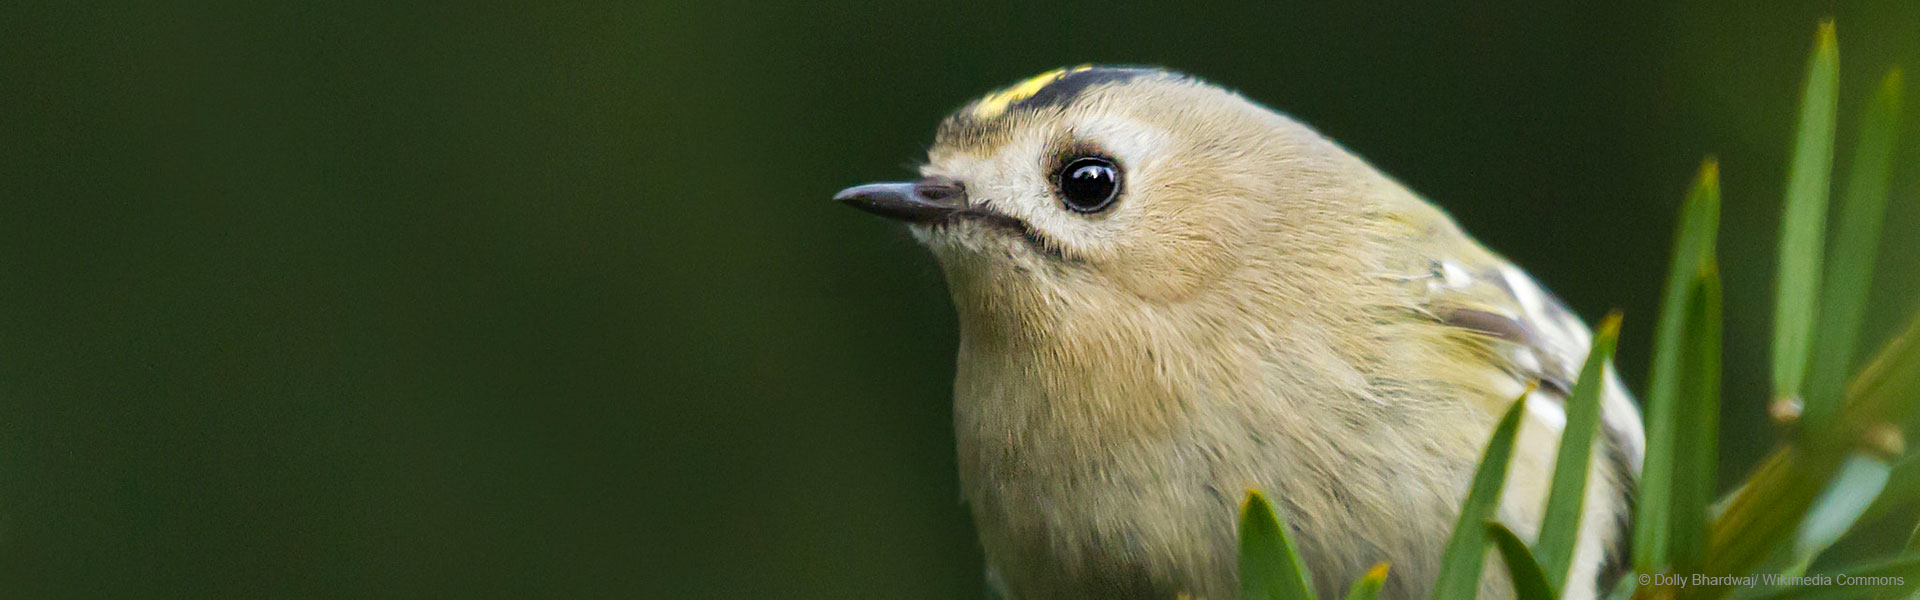 goldcrest-birdwatching-v2-hero-desktop